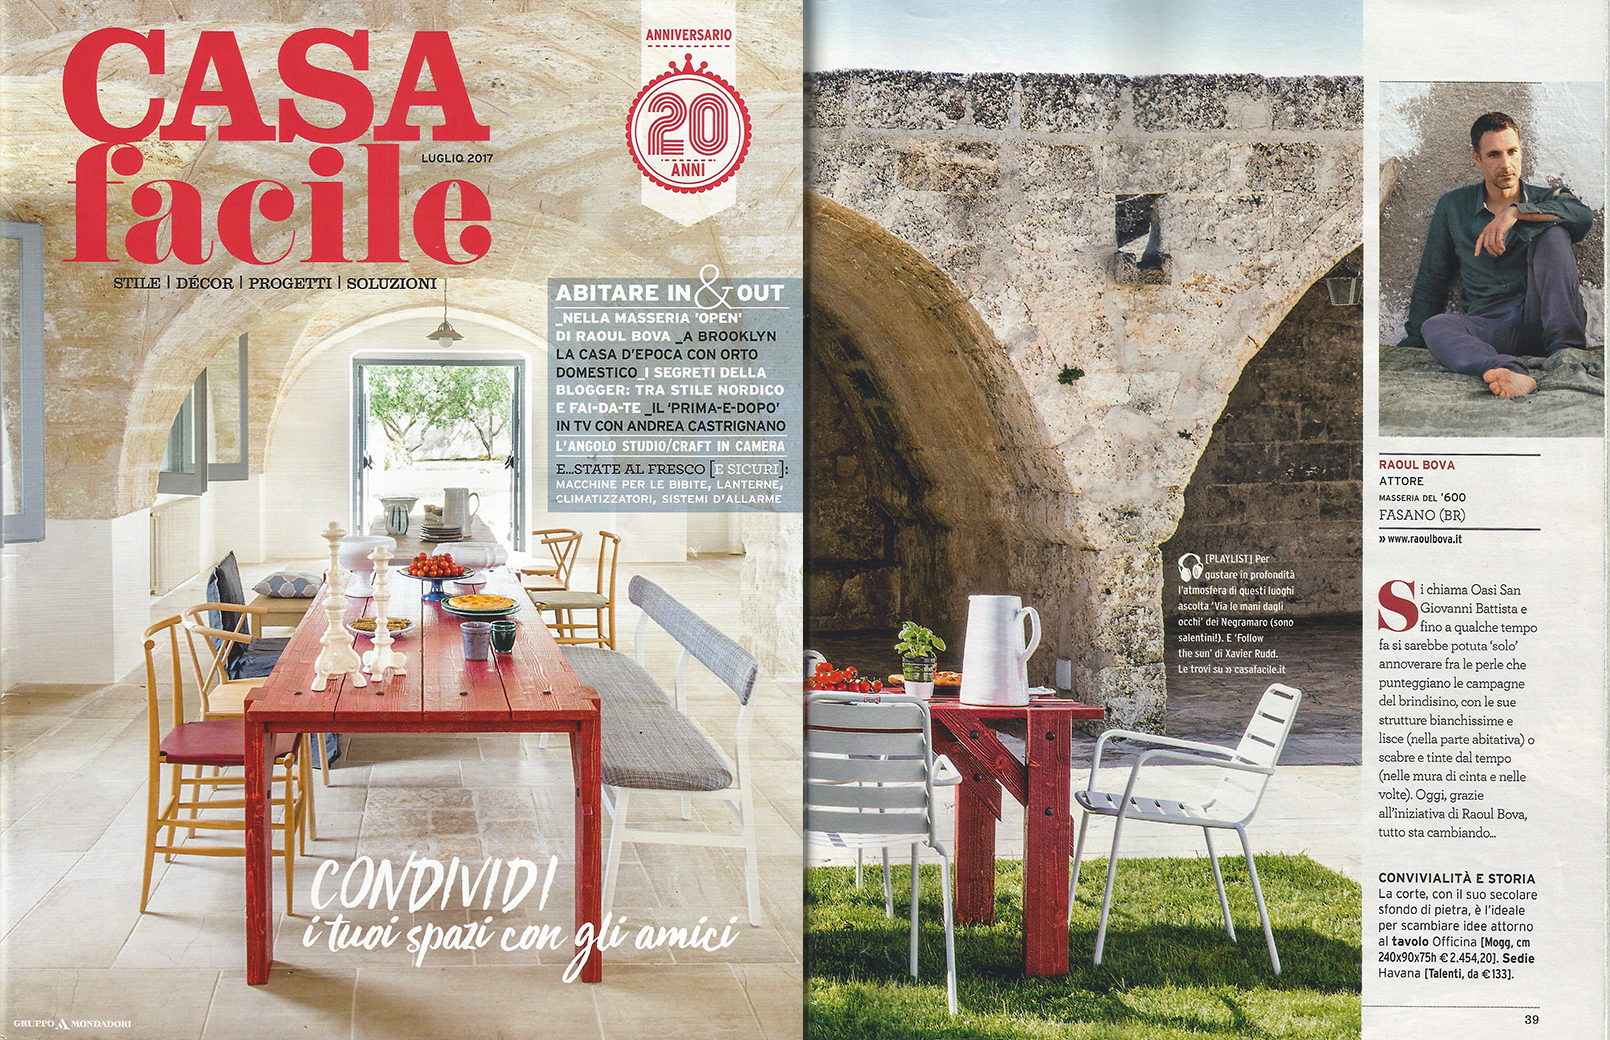 CASA FACILE - 20 YEARS SPECIAL - July 2017 | Marcantonio Raimondi ...